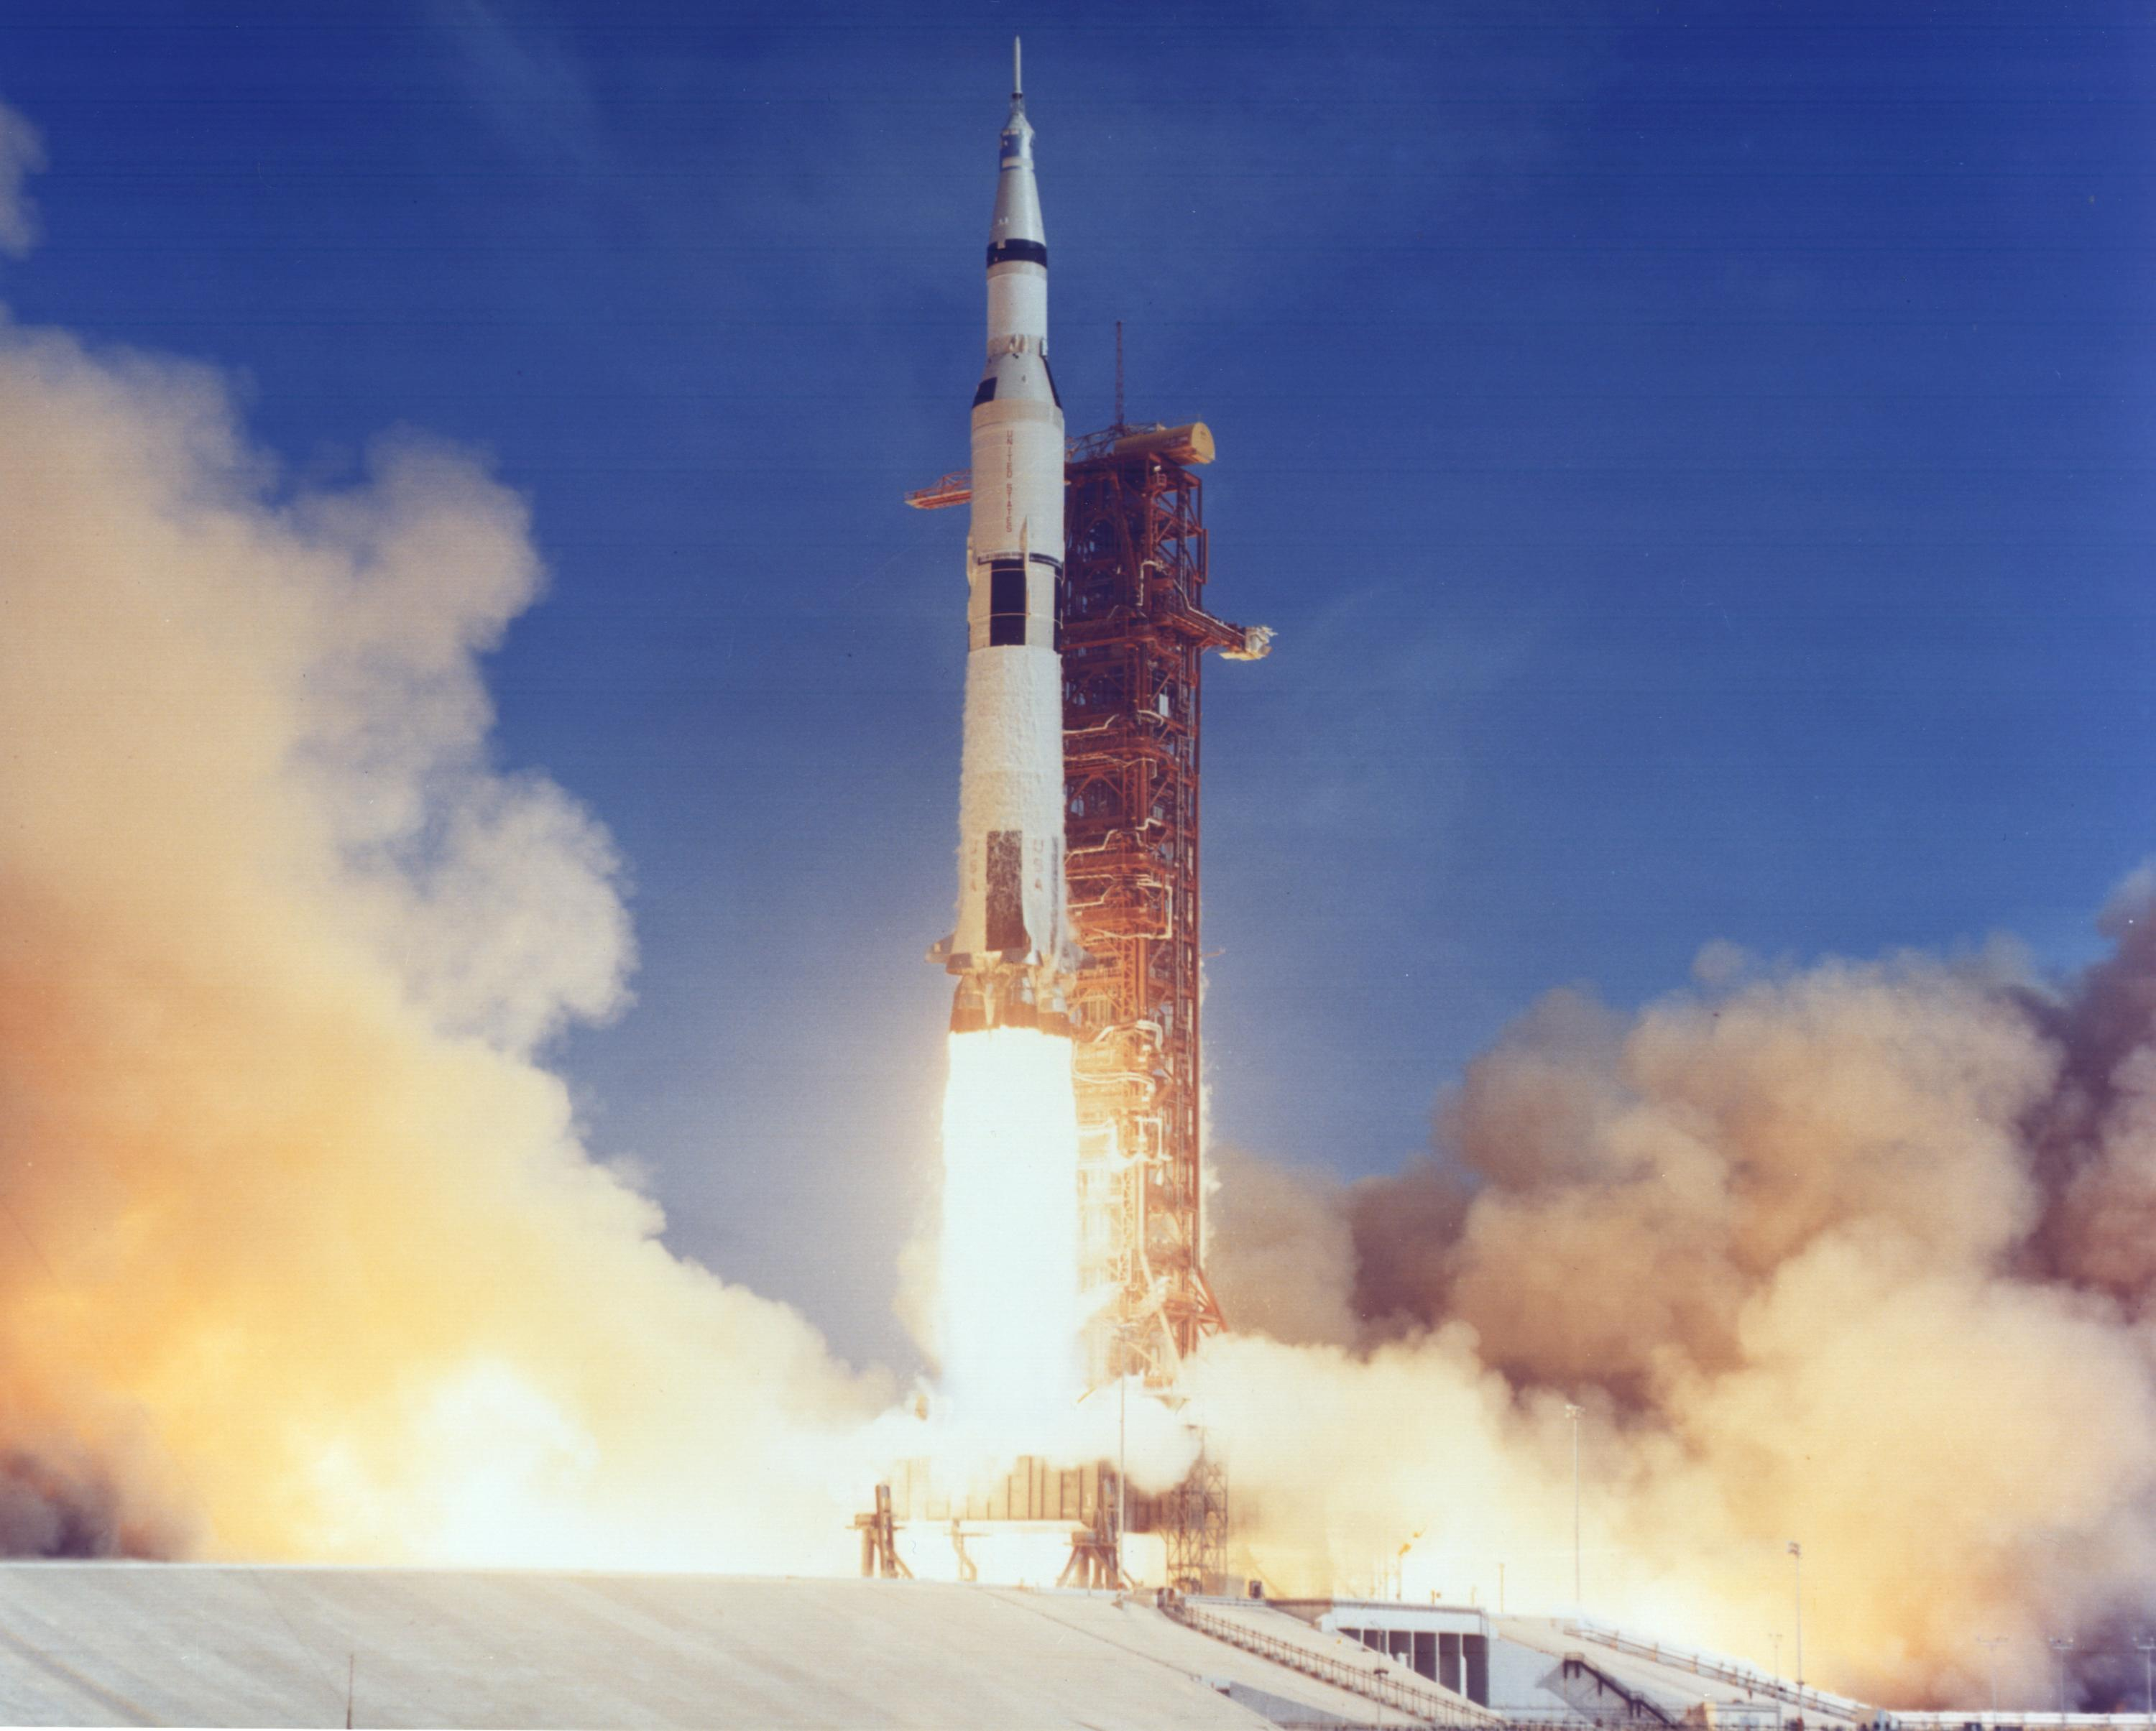 Apollo 11 liftoff from pad 39A | The Planetary Society